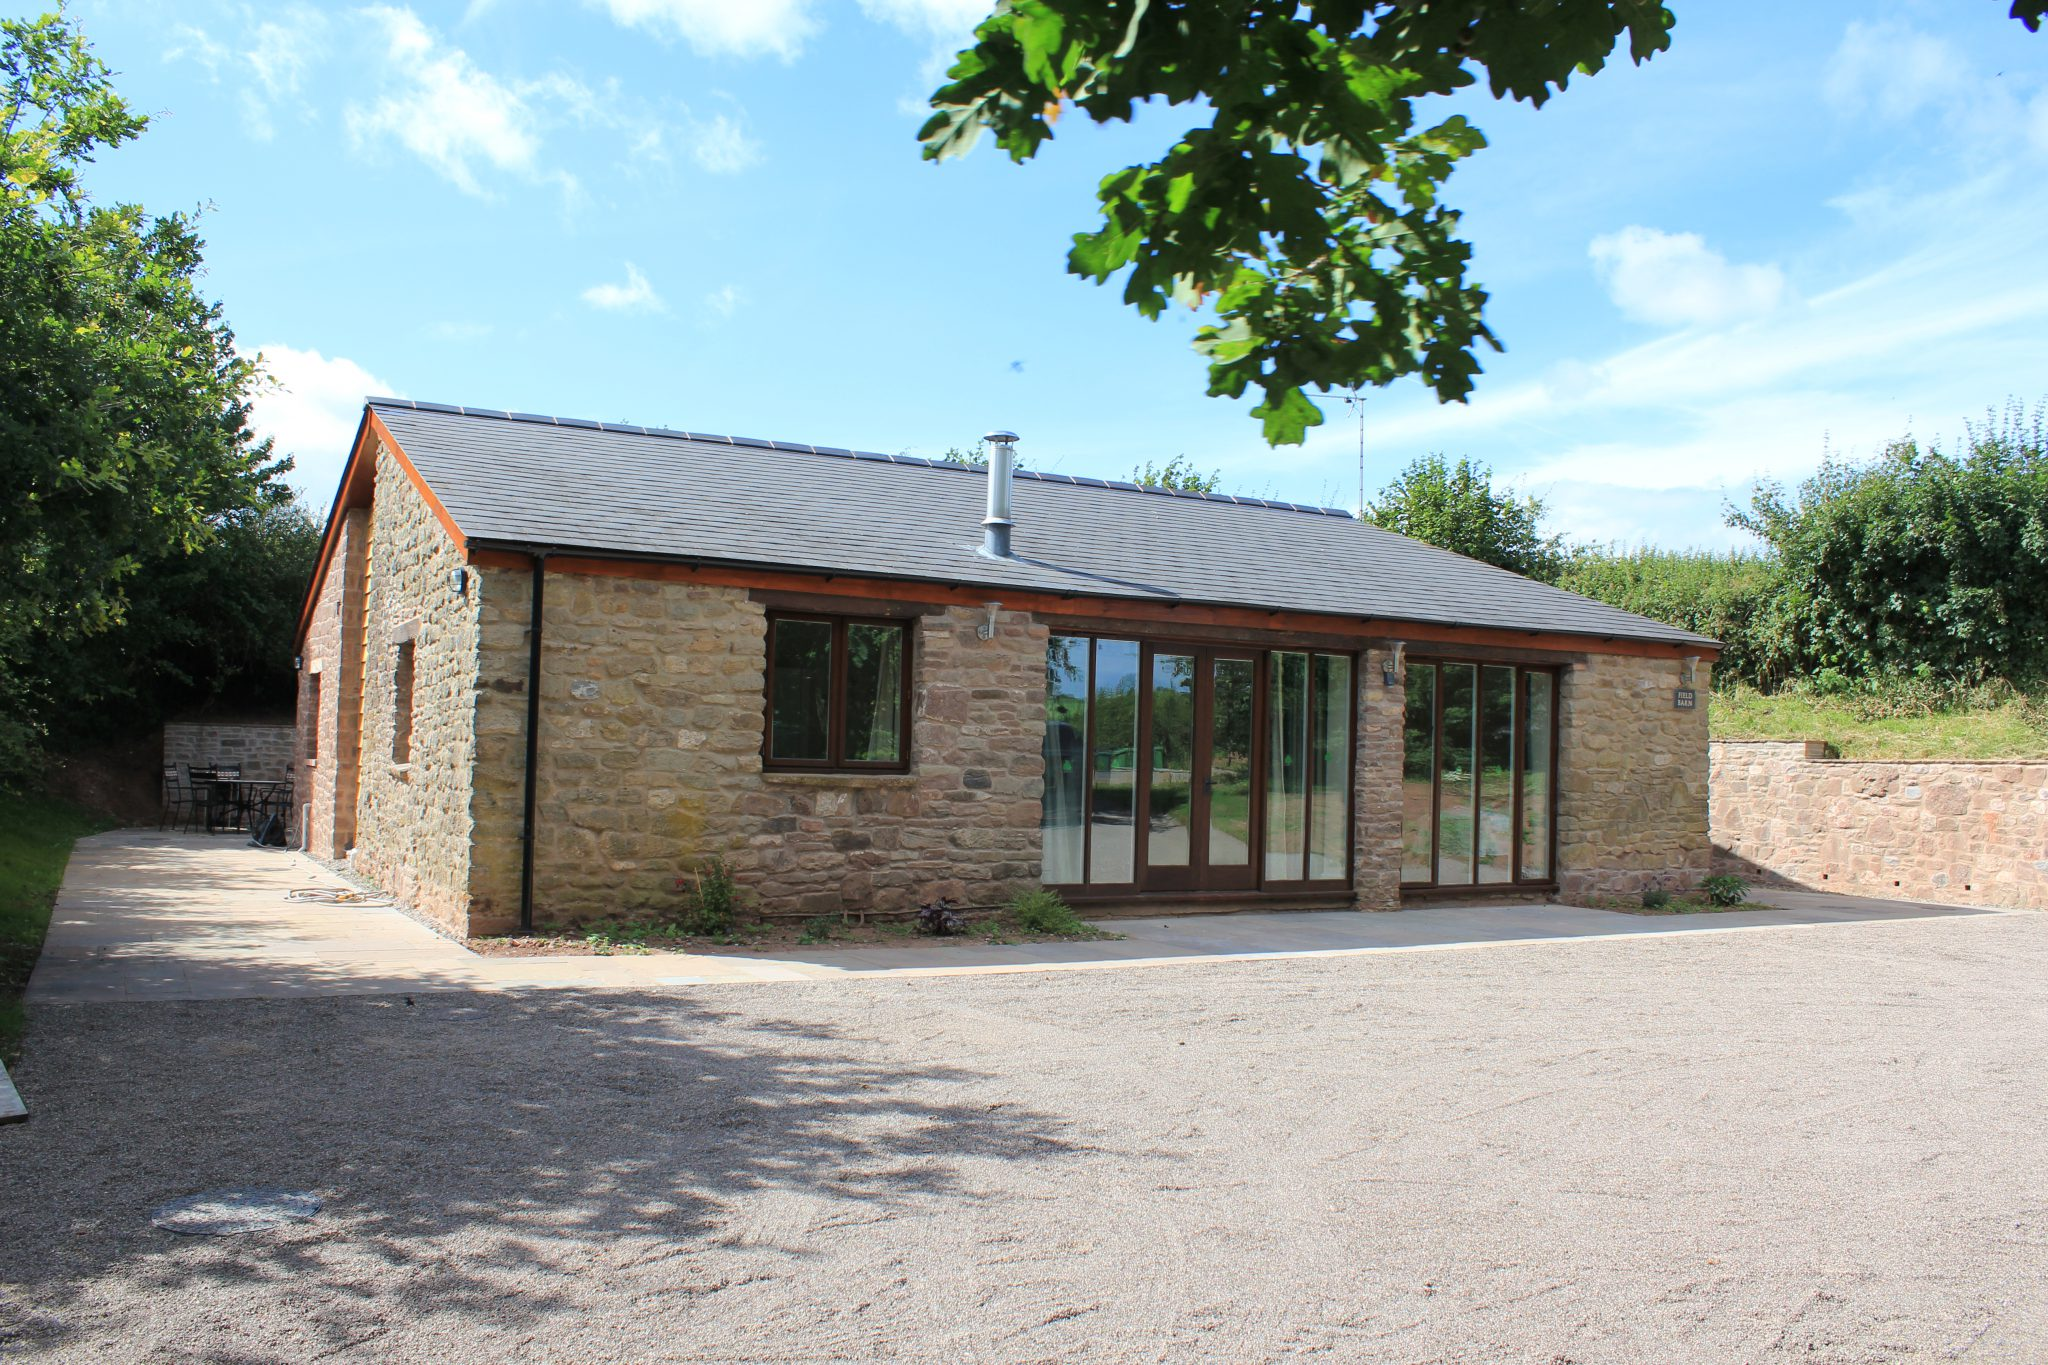 Trebandy-Farm-rural-countryside-retreat-accomodation-herefordshire-farmstay 3